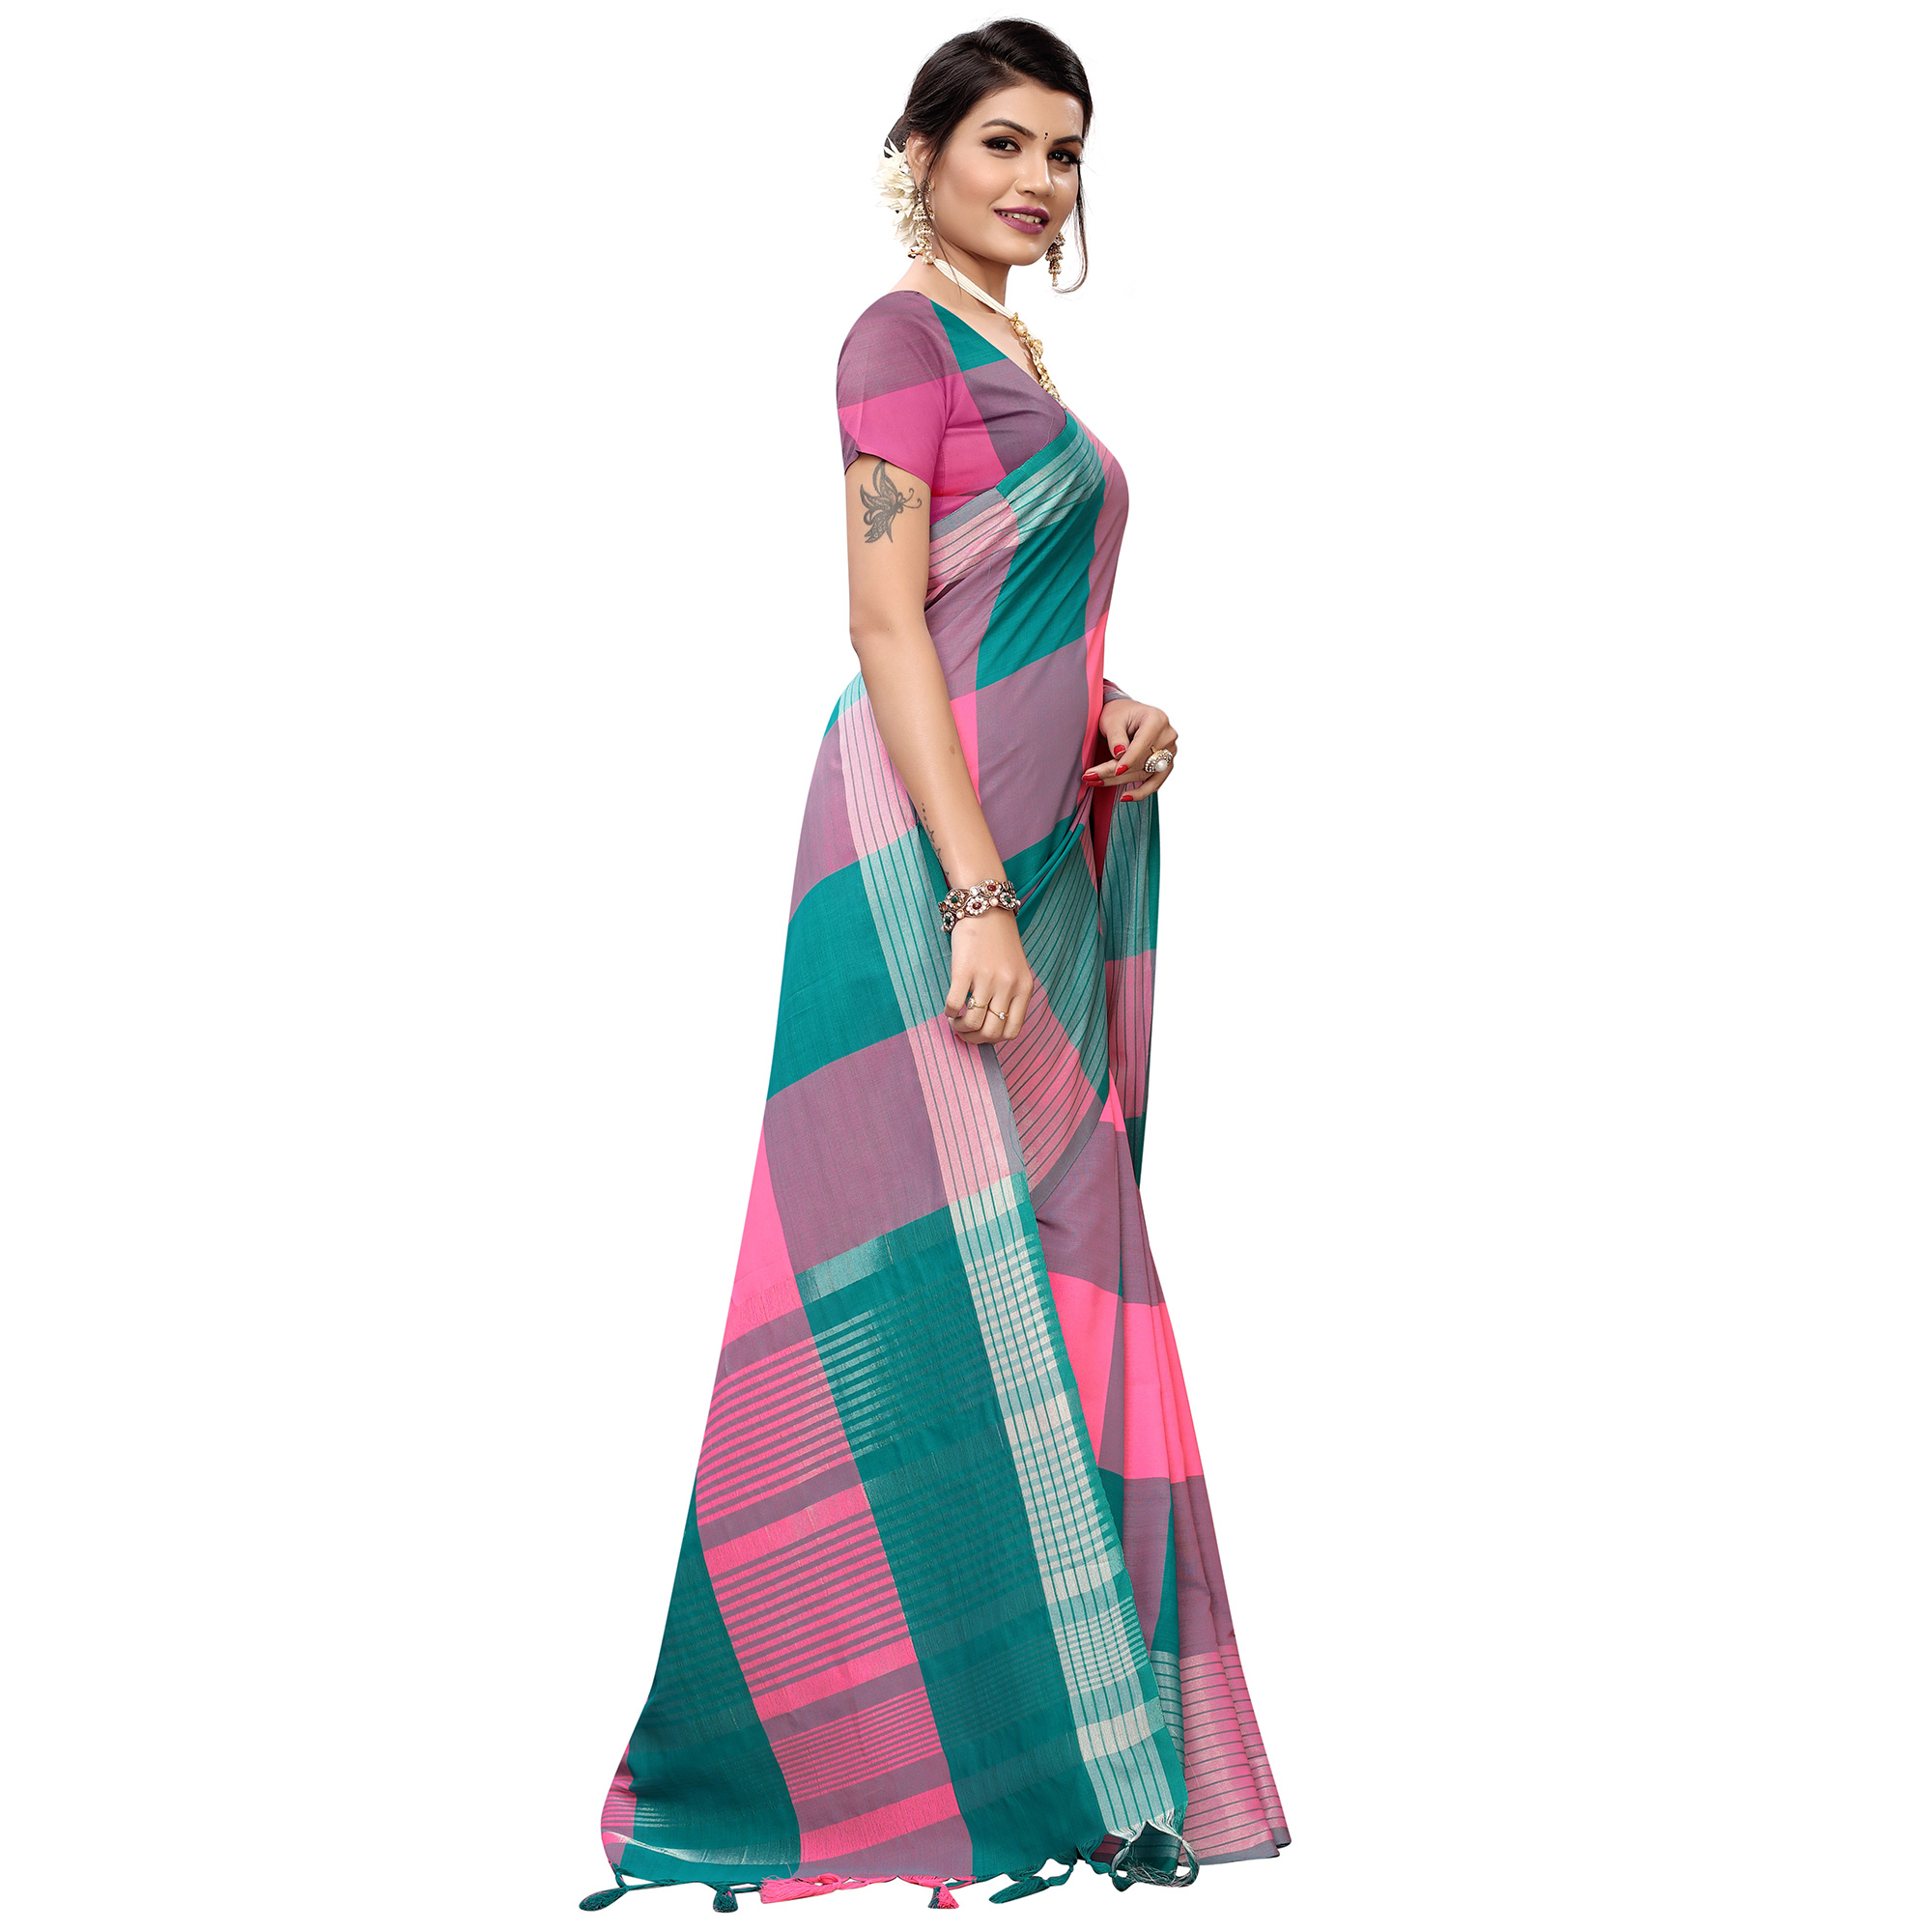 Captivating Pink-Turquoise Green Colored Festive Wear Printed Cotton Silk Saree